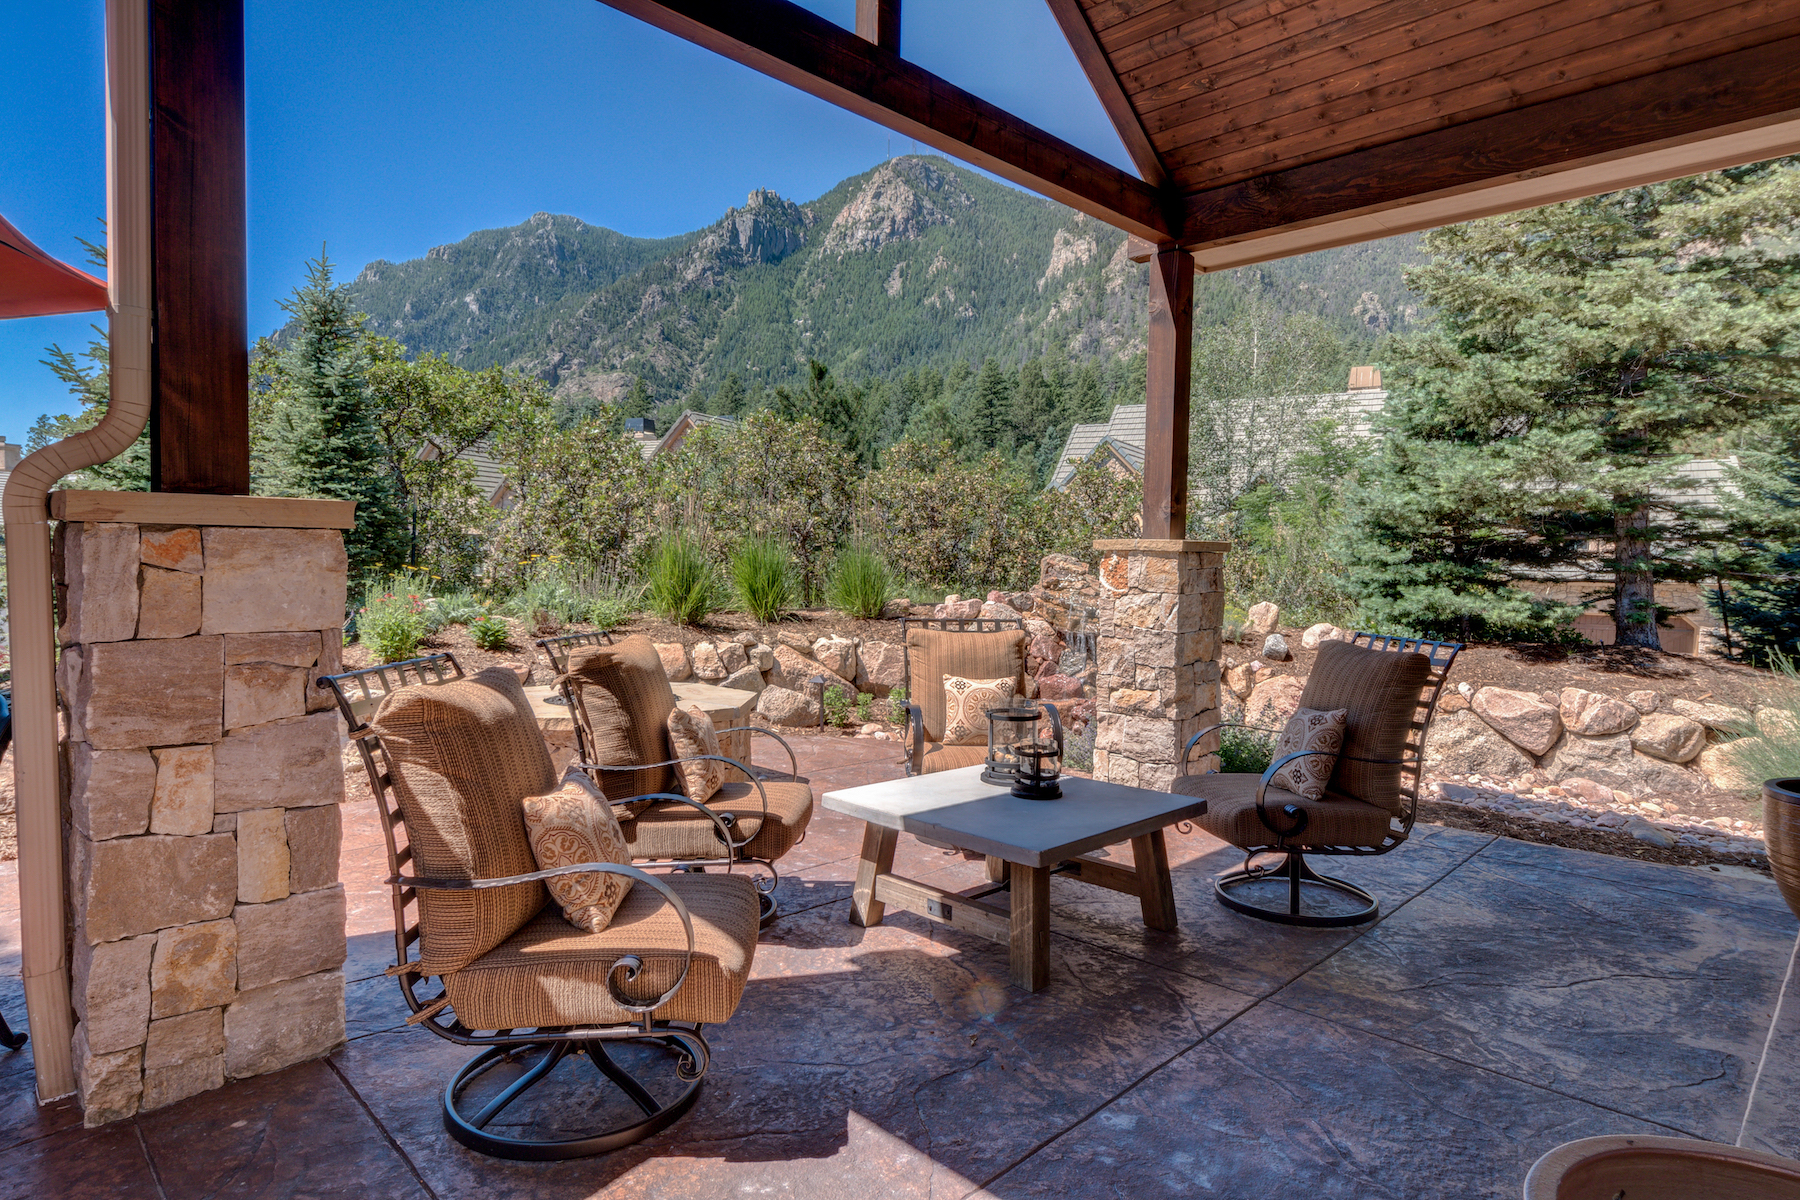 2 - Covered Section of Patio with Mountain Views.jpg